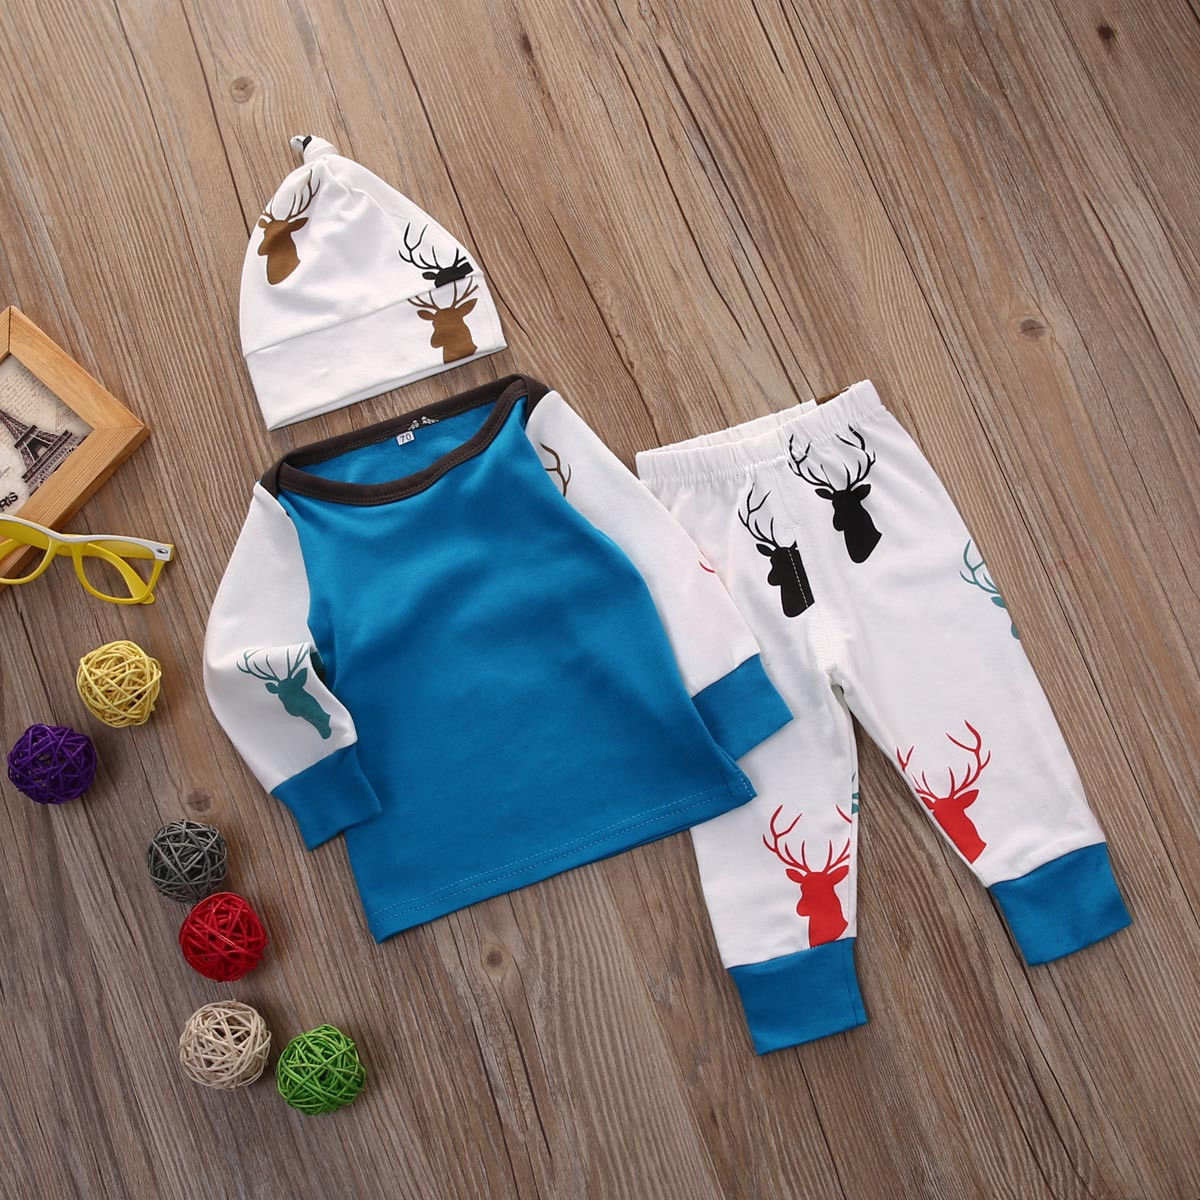 3Pcs Newborn Infant Baby Boys Girls Clothing Set 3pcs Top Deer Pants Leggings Hat Cotton Clothes Outfit Set Baby Boy Girl pink newborn infant baby girls clothes short sleeve bodysuit striped leg warmers headband 3pcs outfit bebek clothing set 0 18m